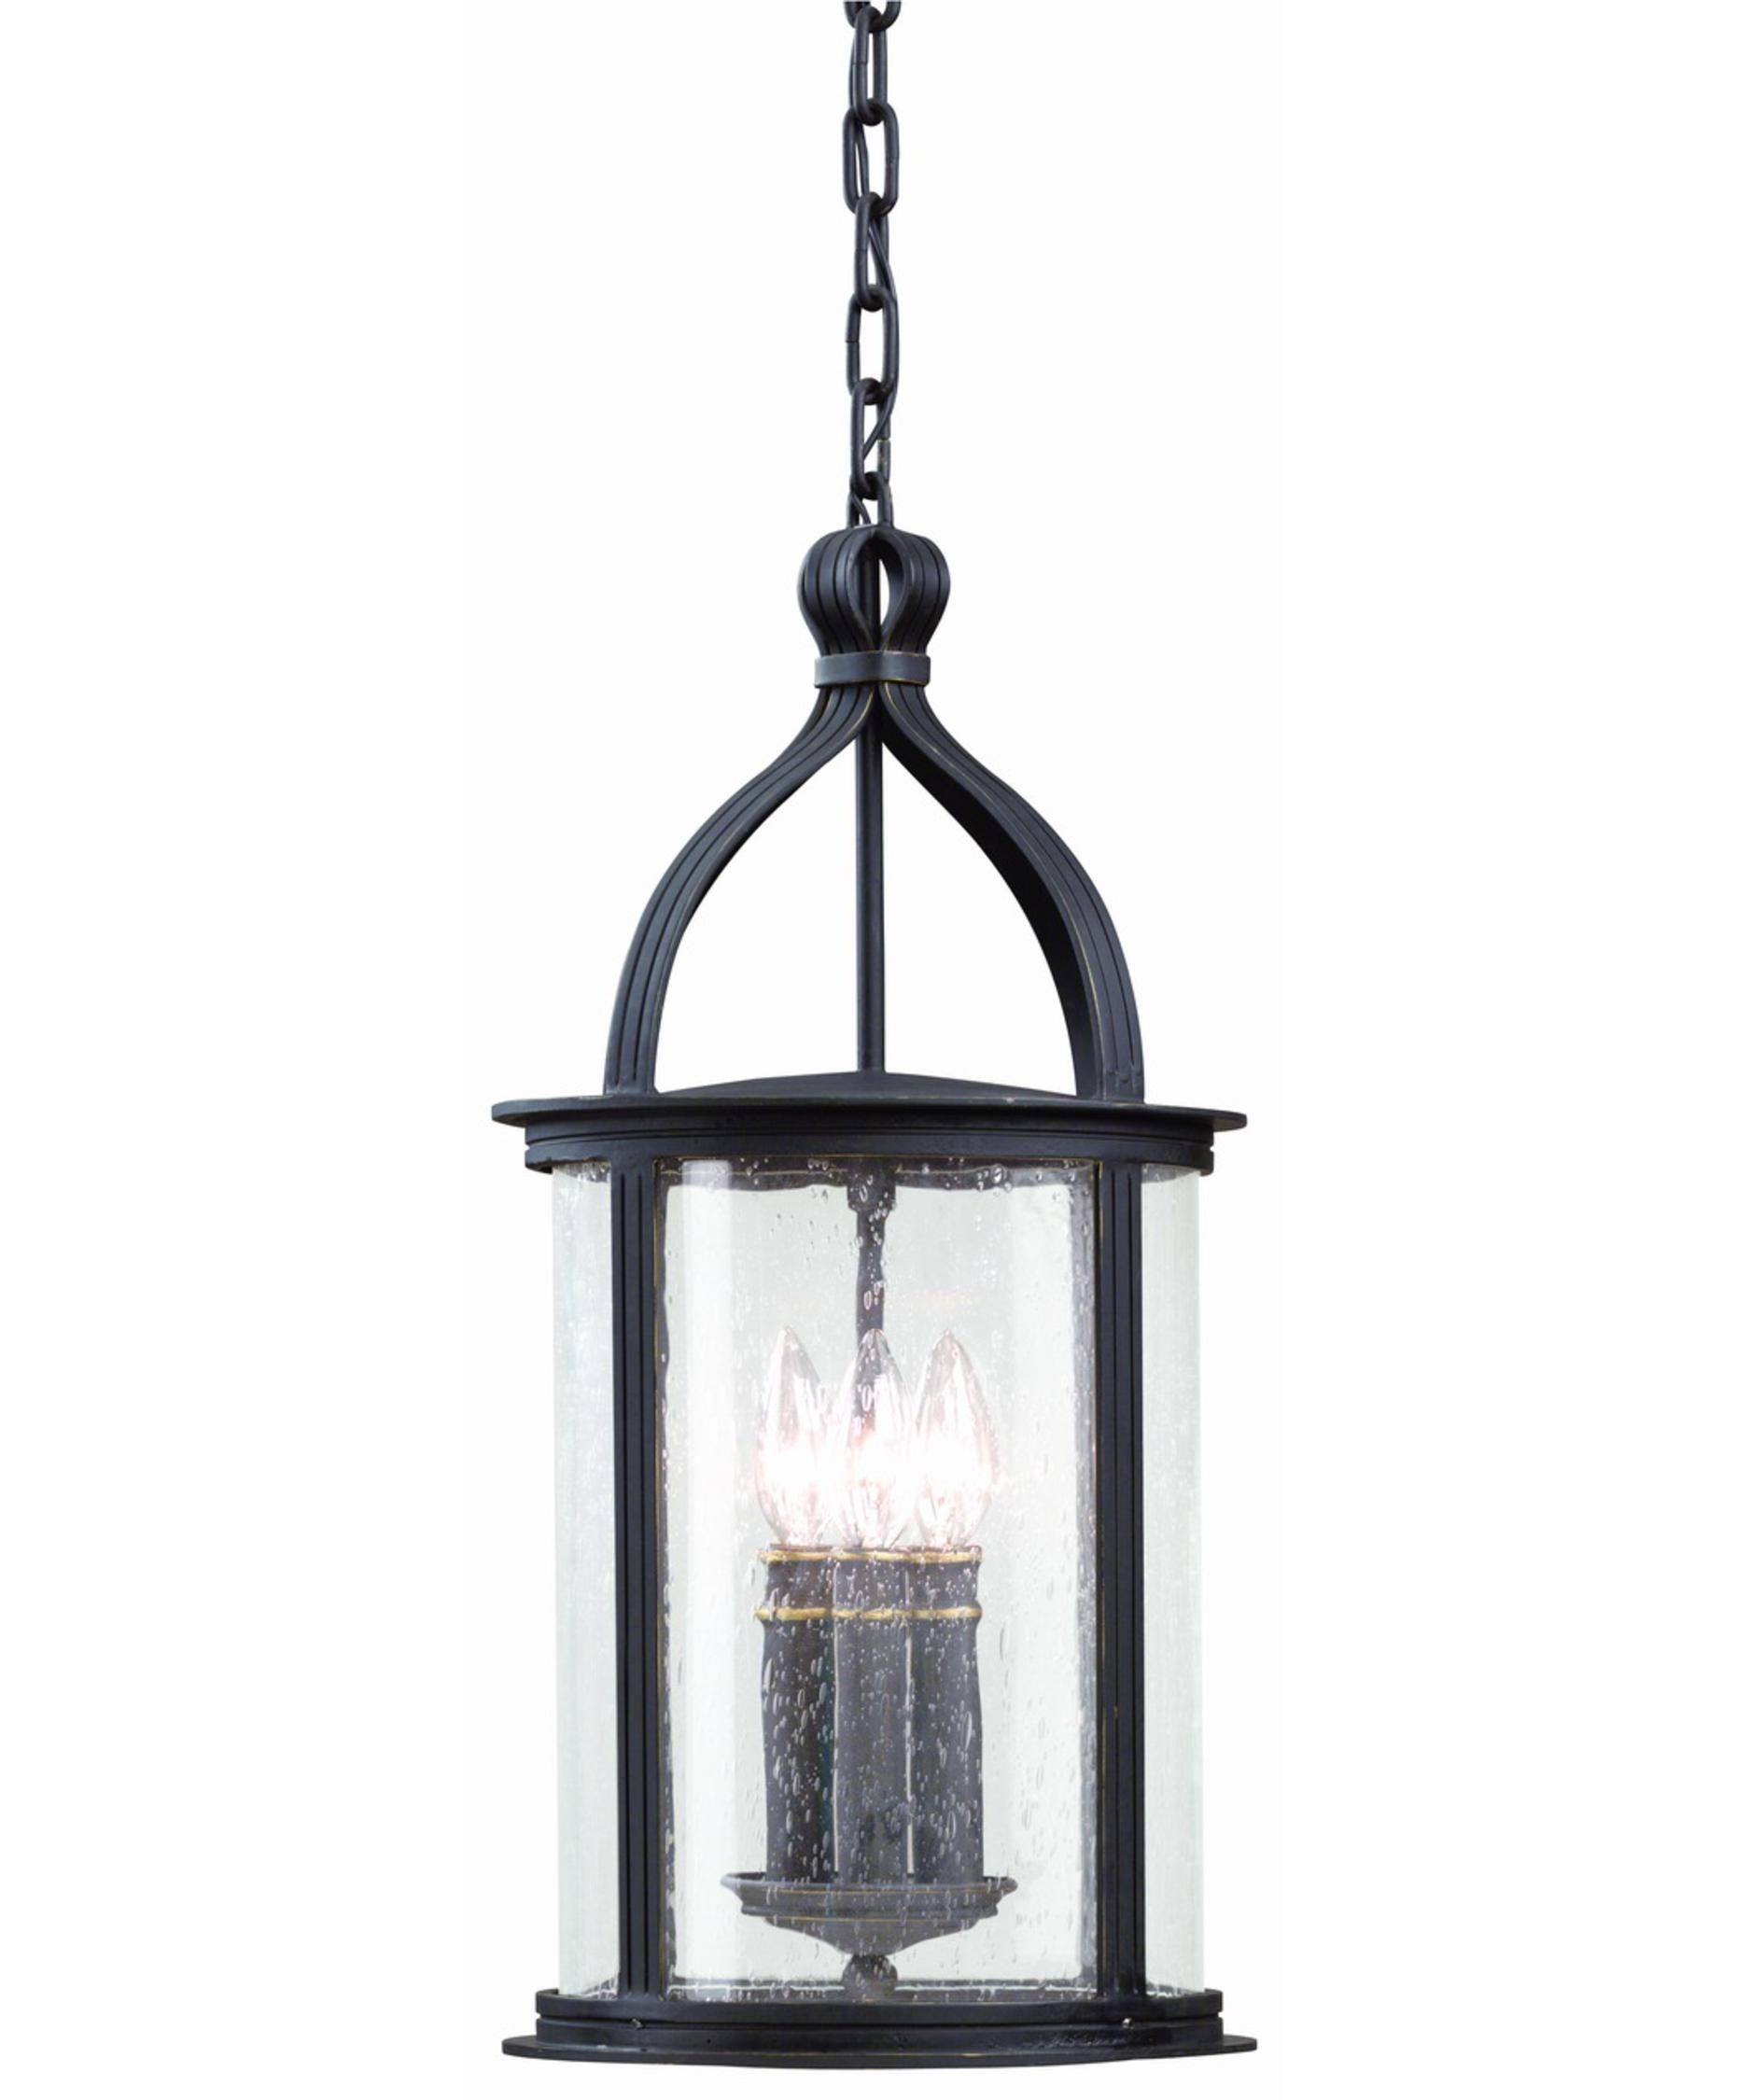 Troy Lighting F9476 Scarsdale 10 Inch Wide 3 Light Outdoor Hanging With Outdoor Hanging Glass Lanterns (View 13 of 15)